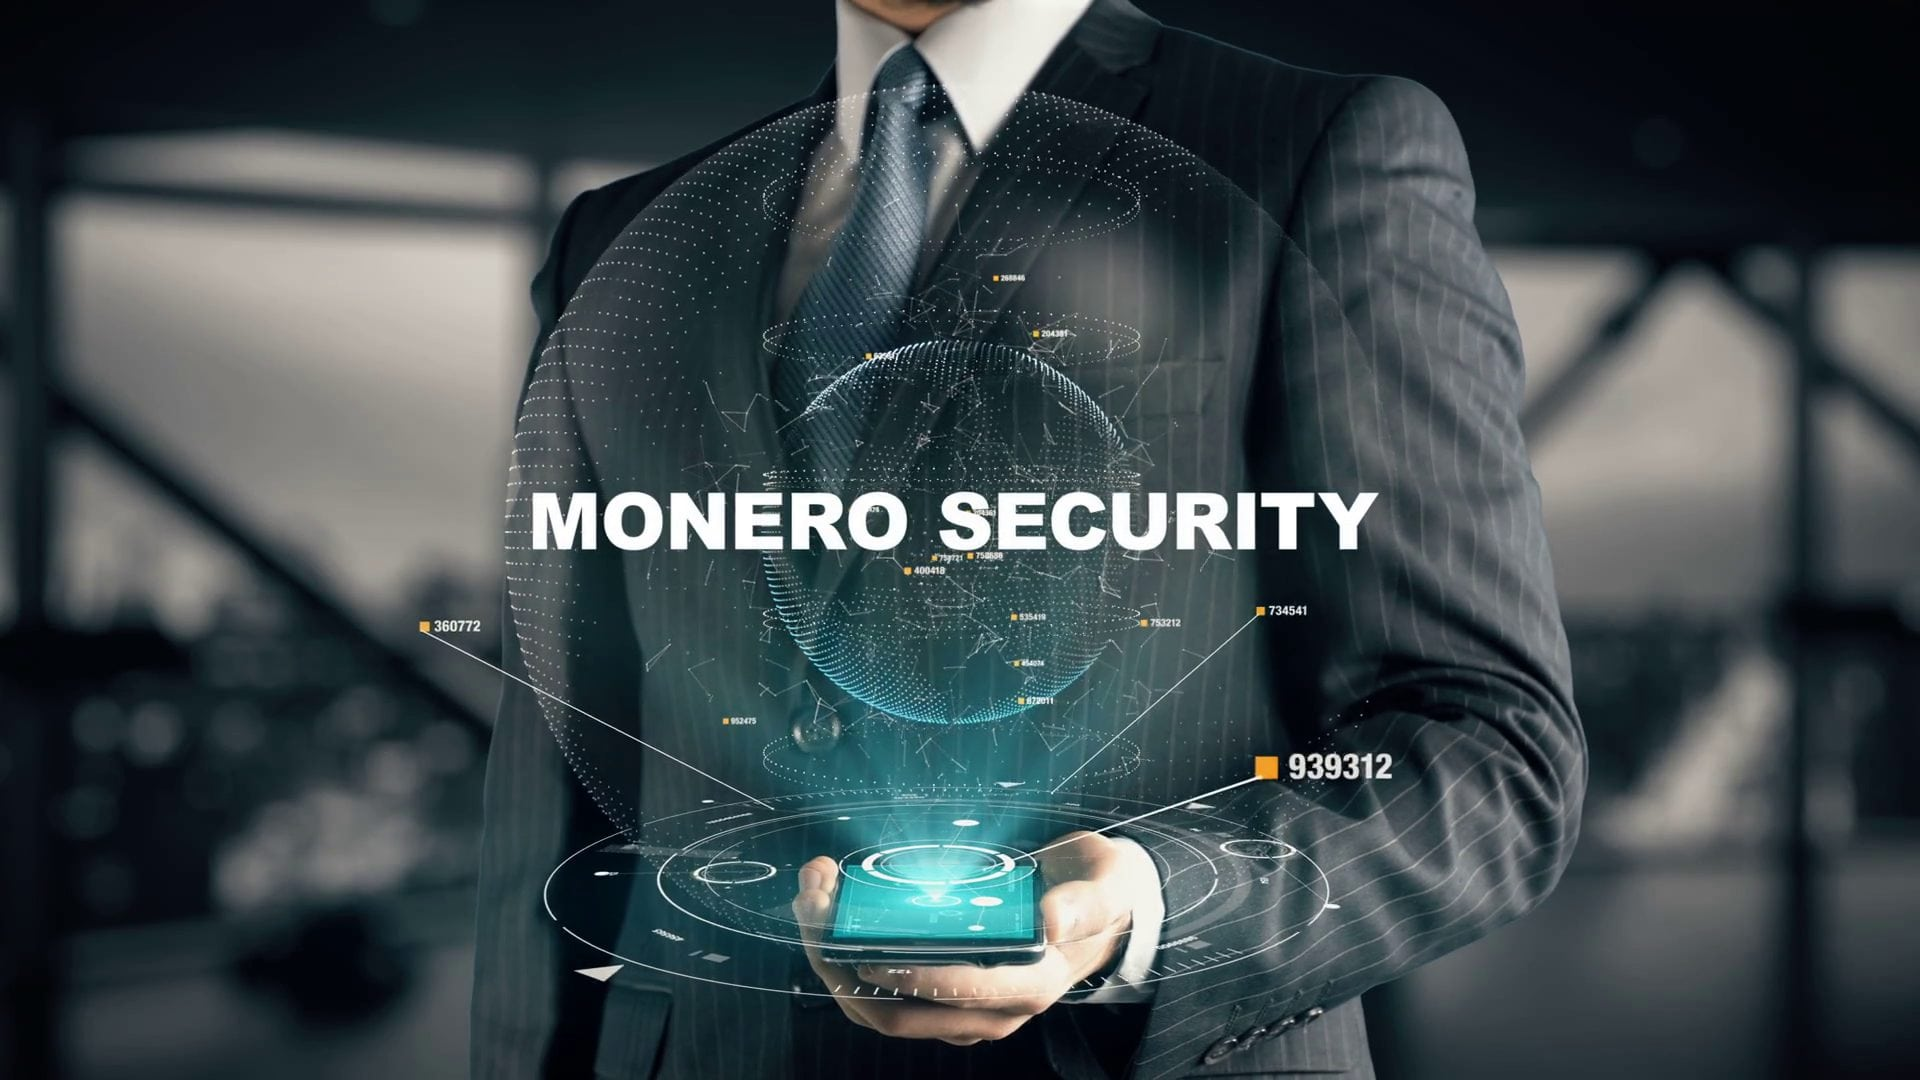 videoblocks businessman with monero security hologram concept helar1ybf thumbnail full14 1 - New ES6 JavaScript Monero Library Is Now Accessible Via GitHub